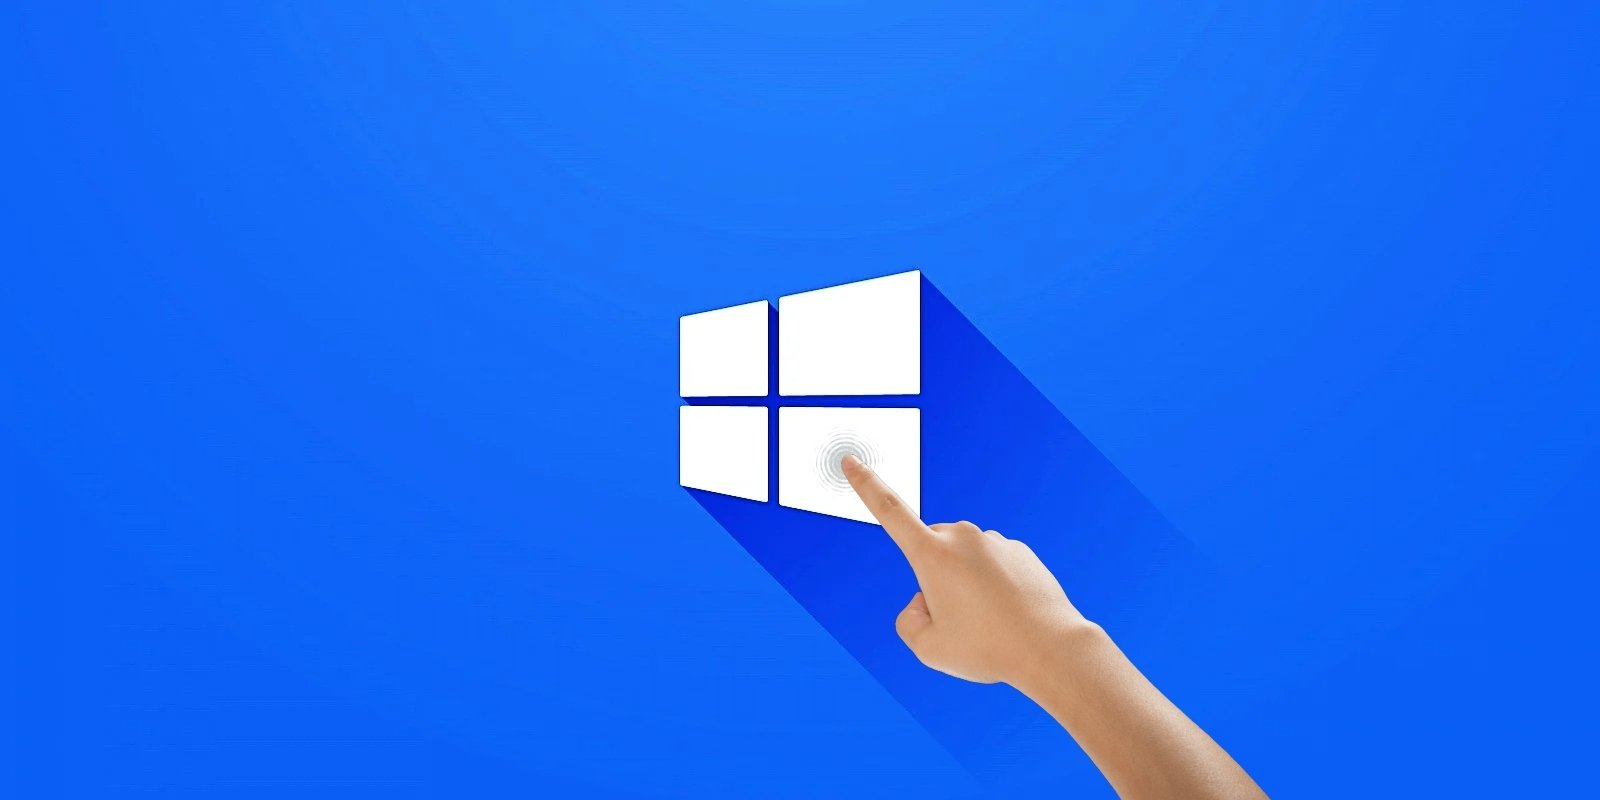 Windows Finger